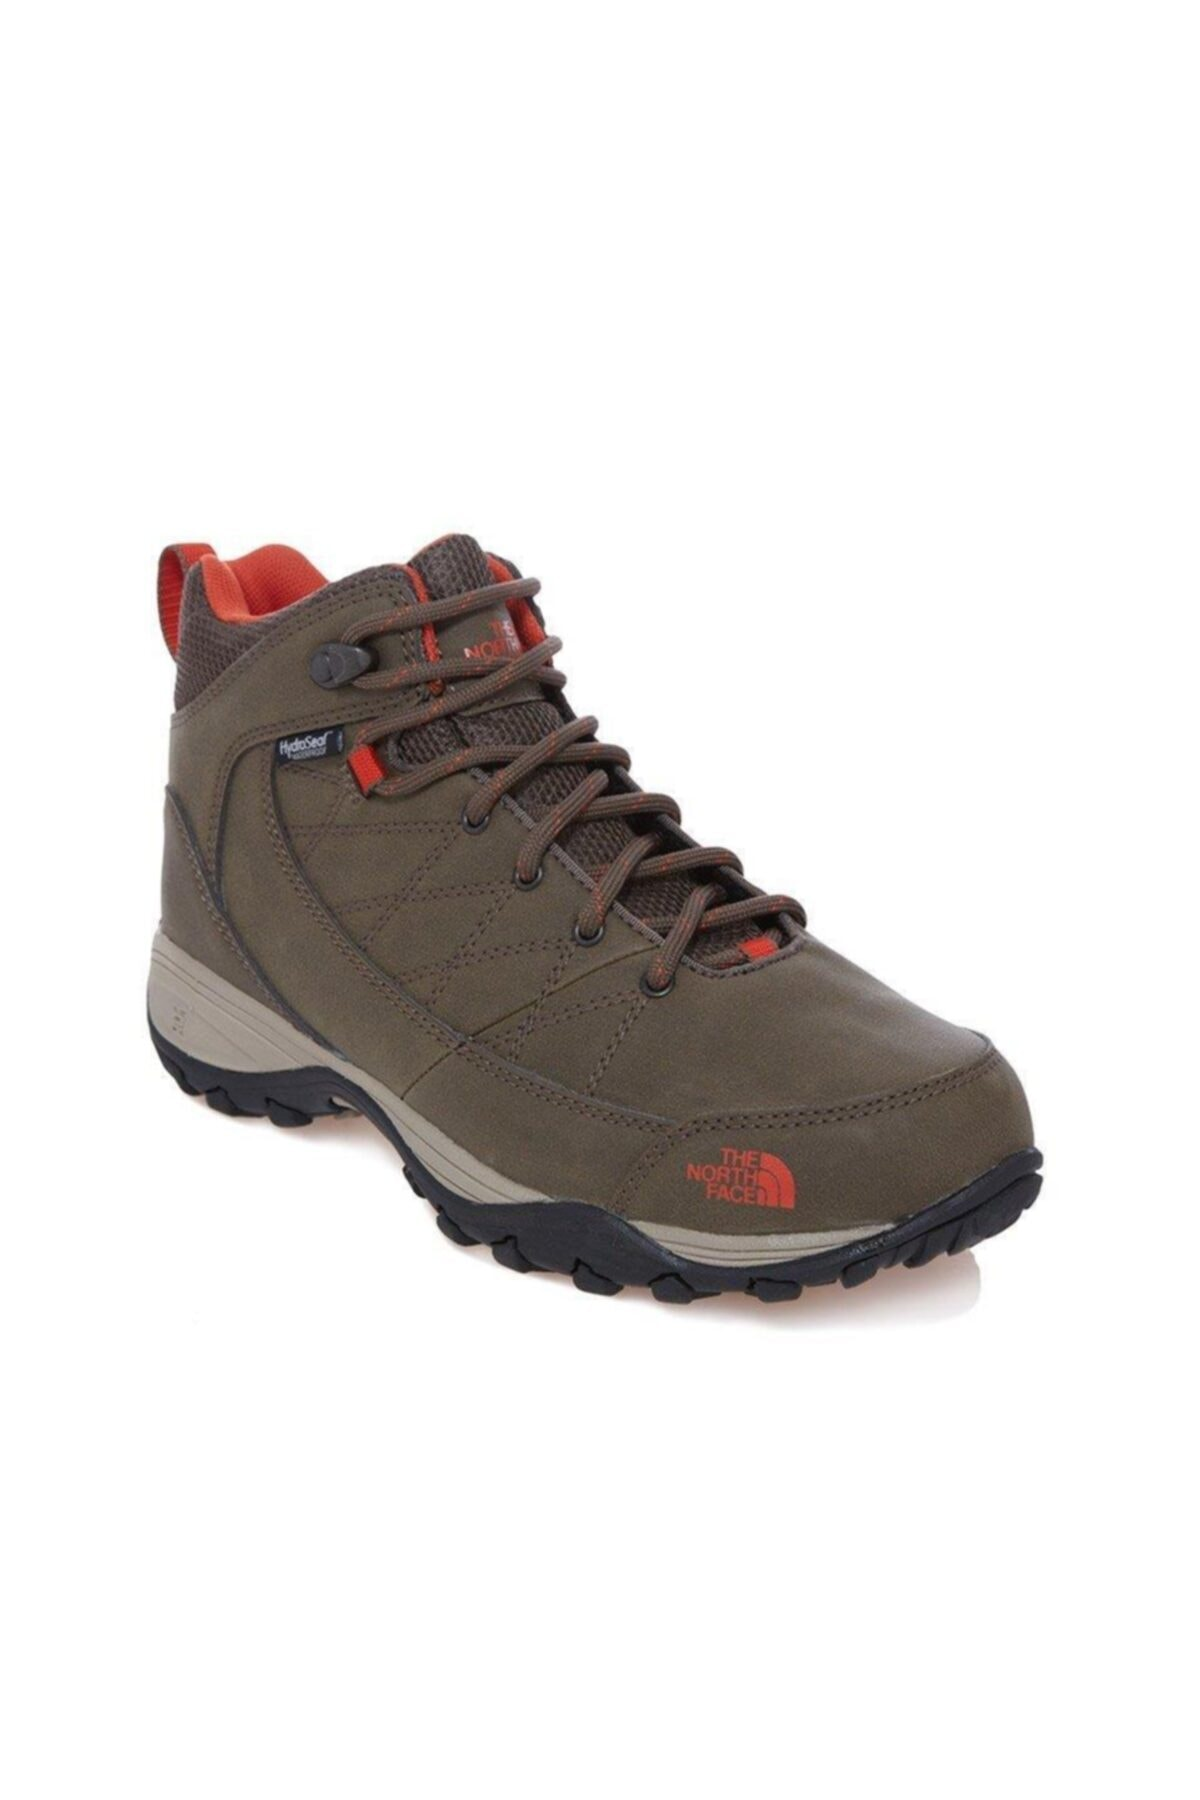 THE NORTH FACE W STORM STRIKE WP Haki Kadın Outdoor Bot 100446220 1